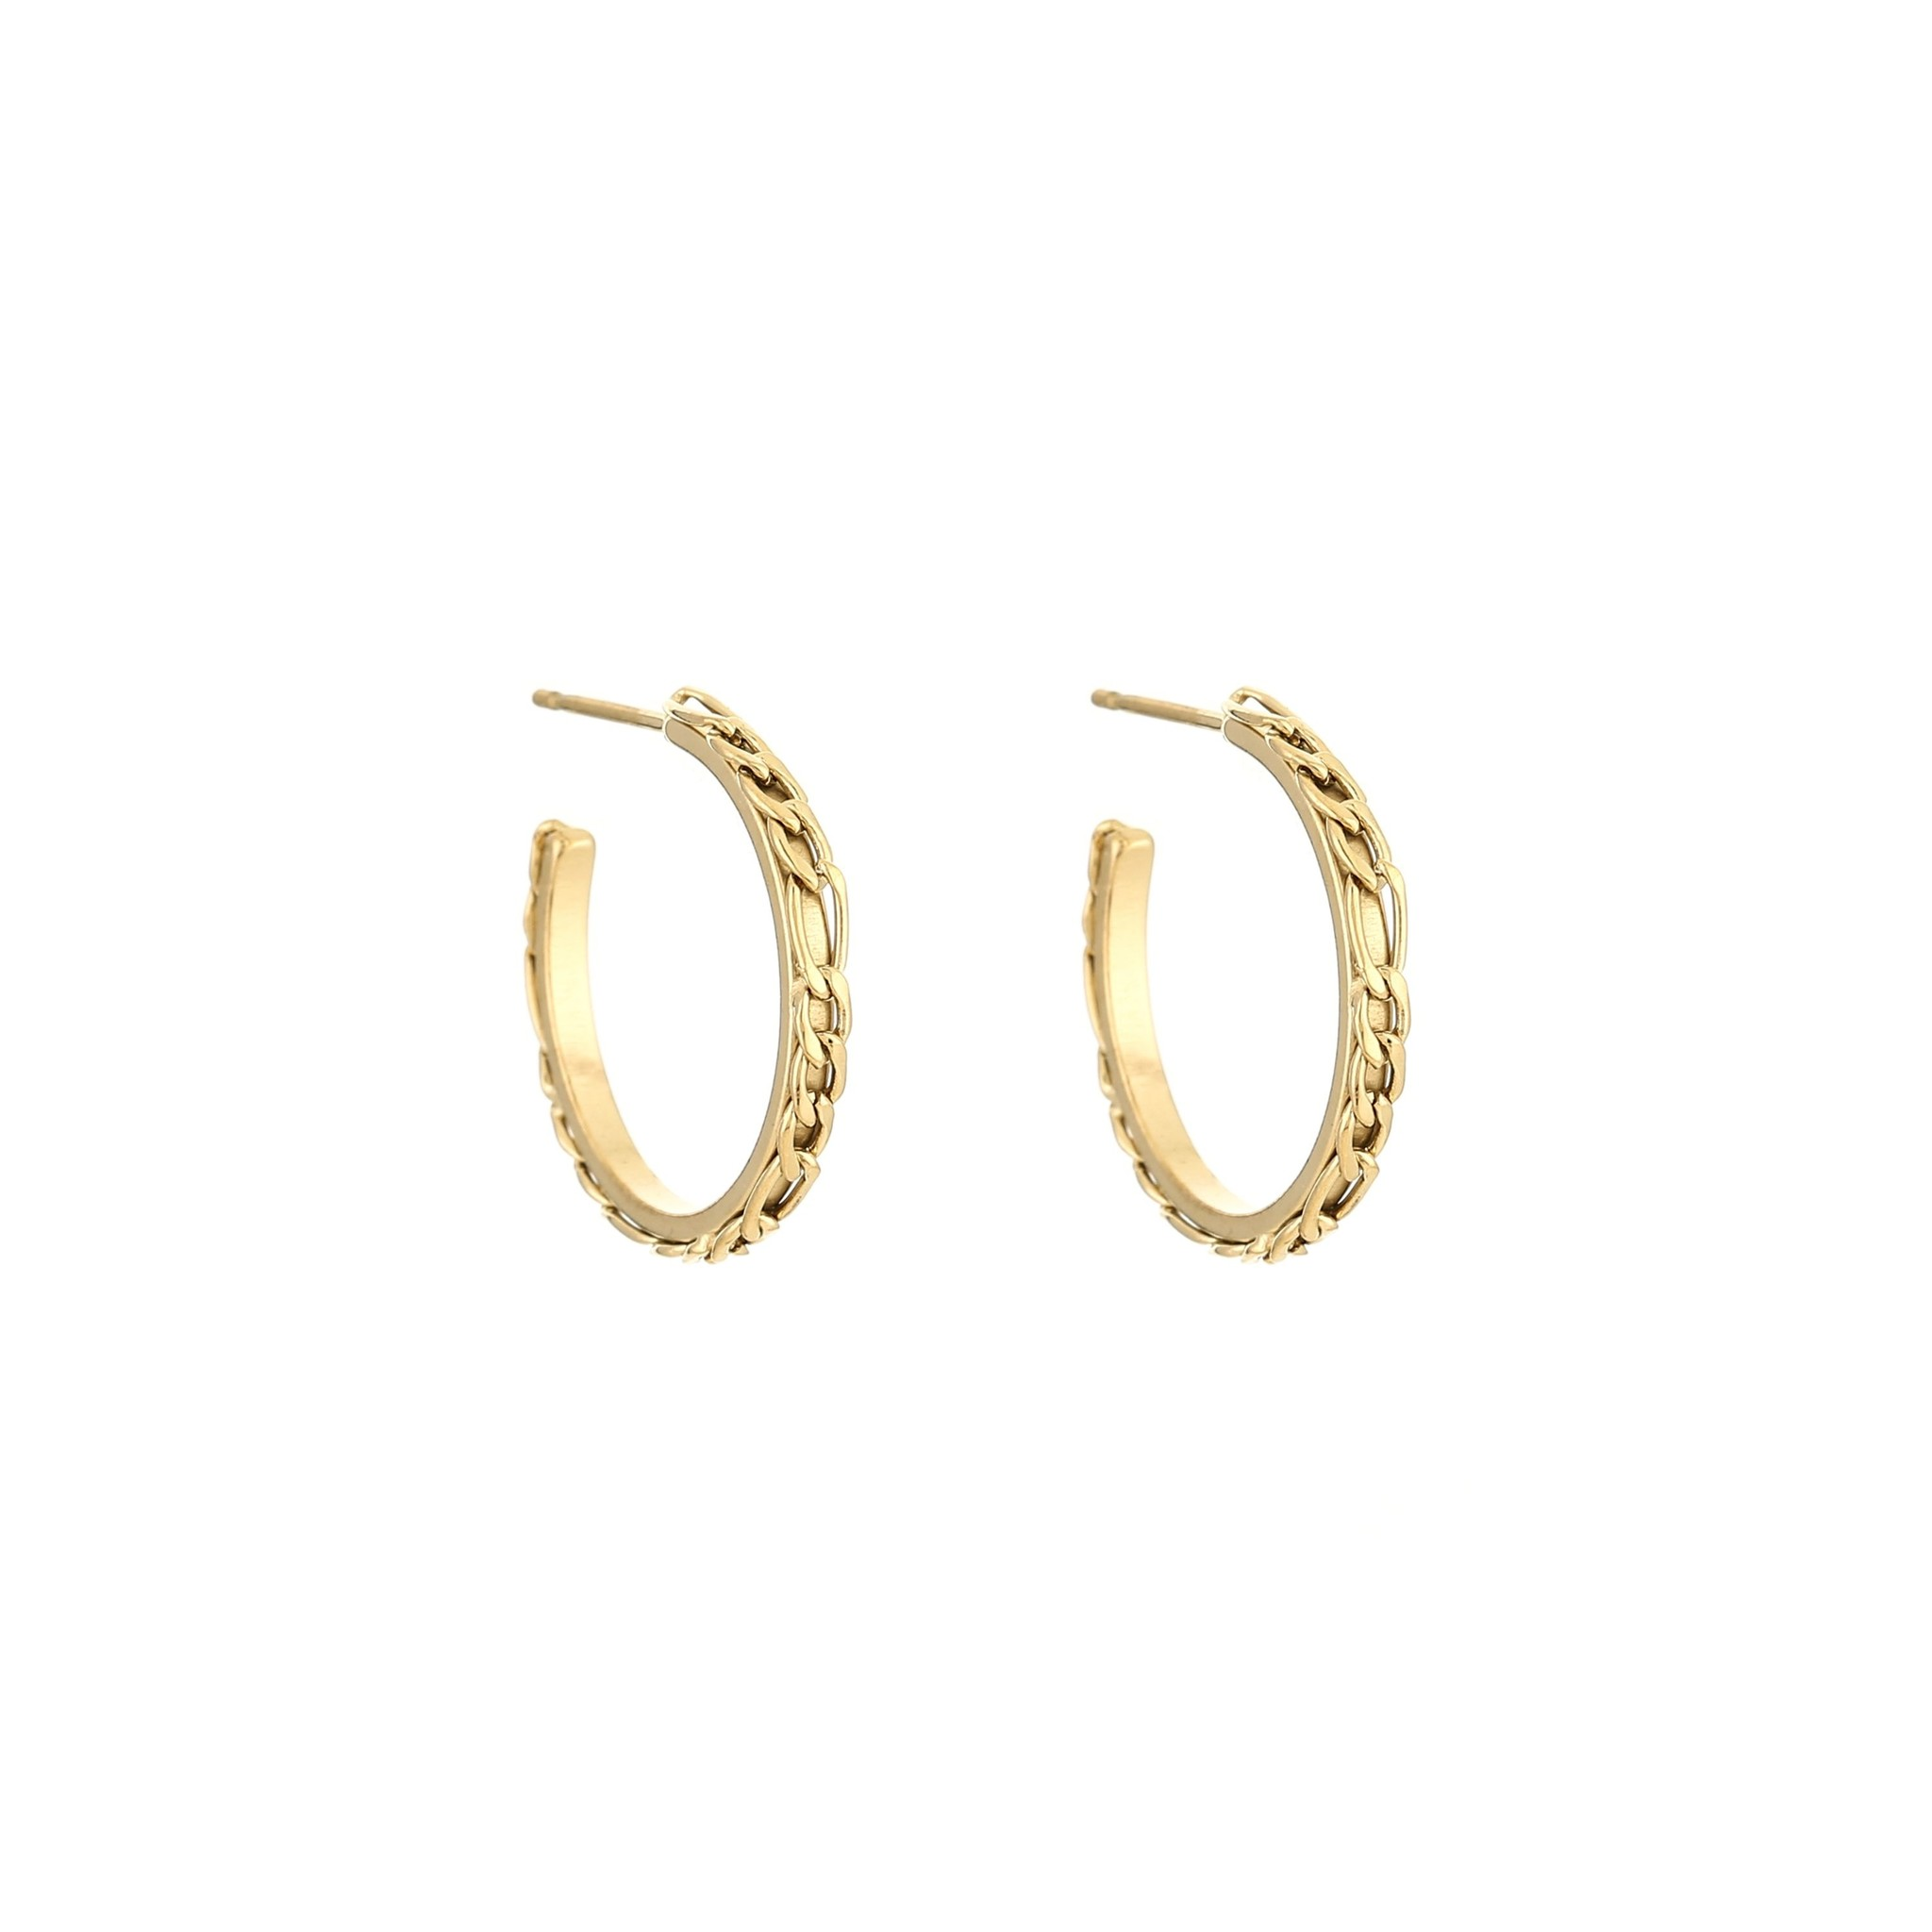 Stainless Steel Hoop Earrings with Chain Pattern